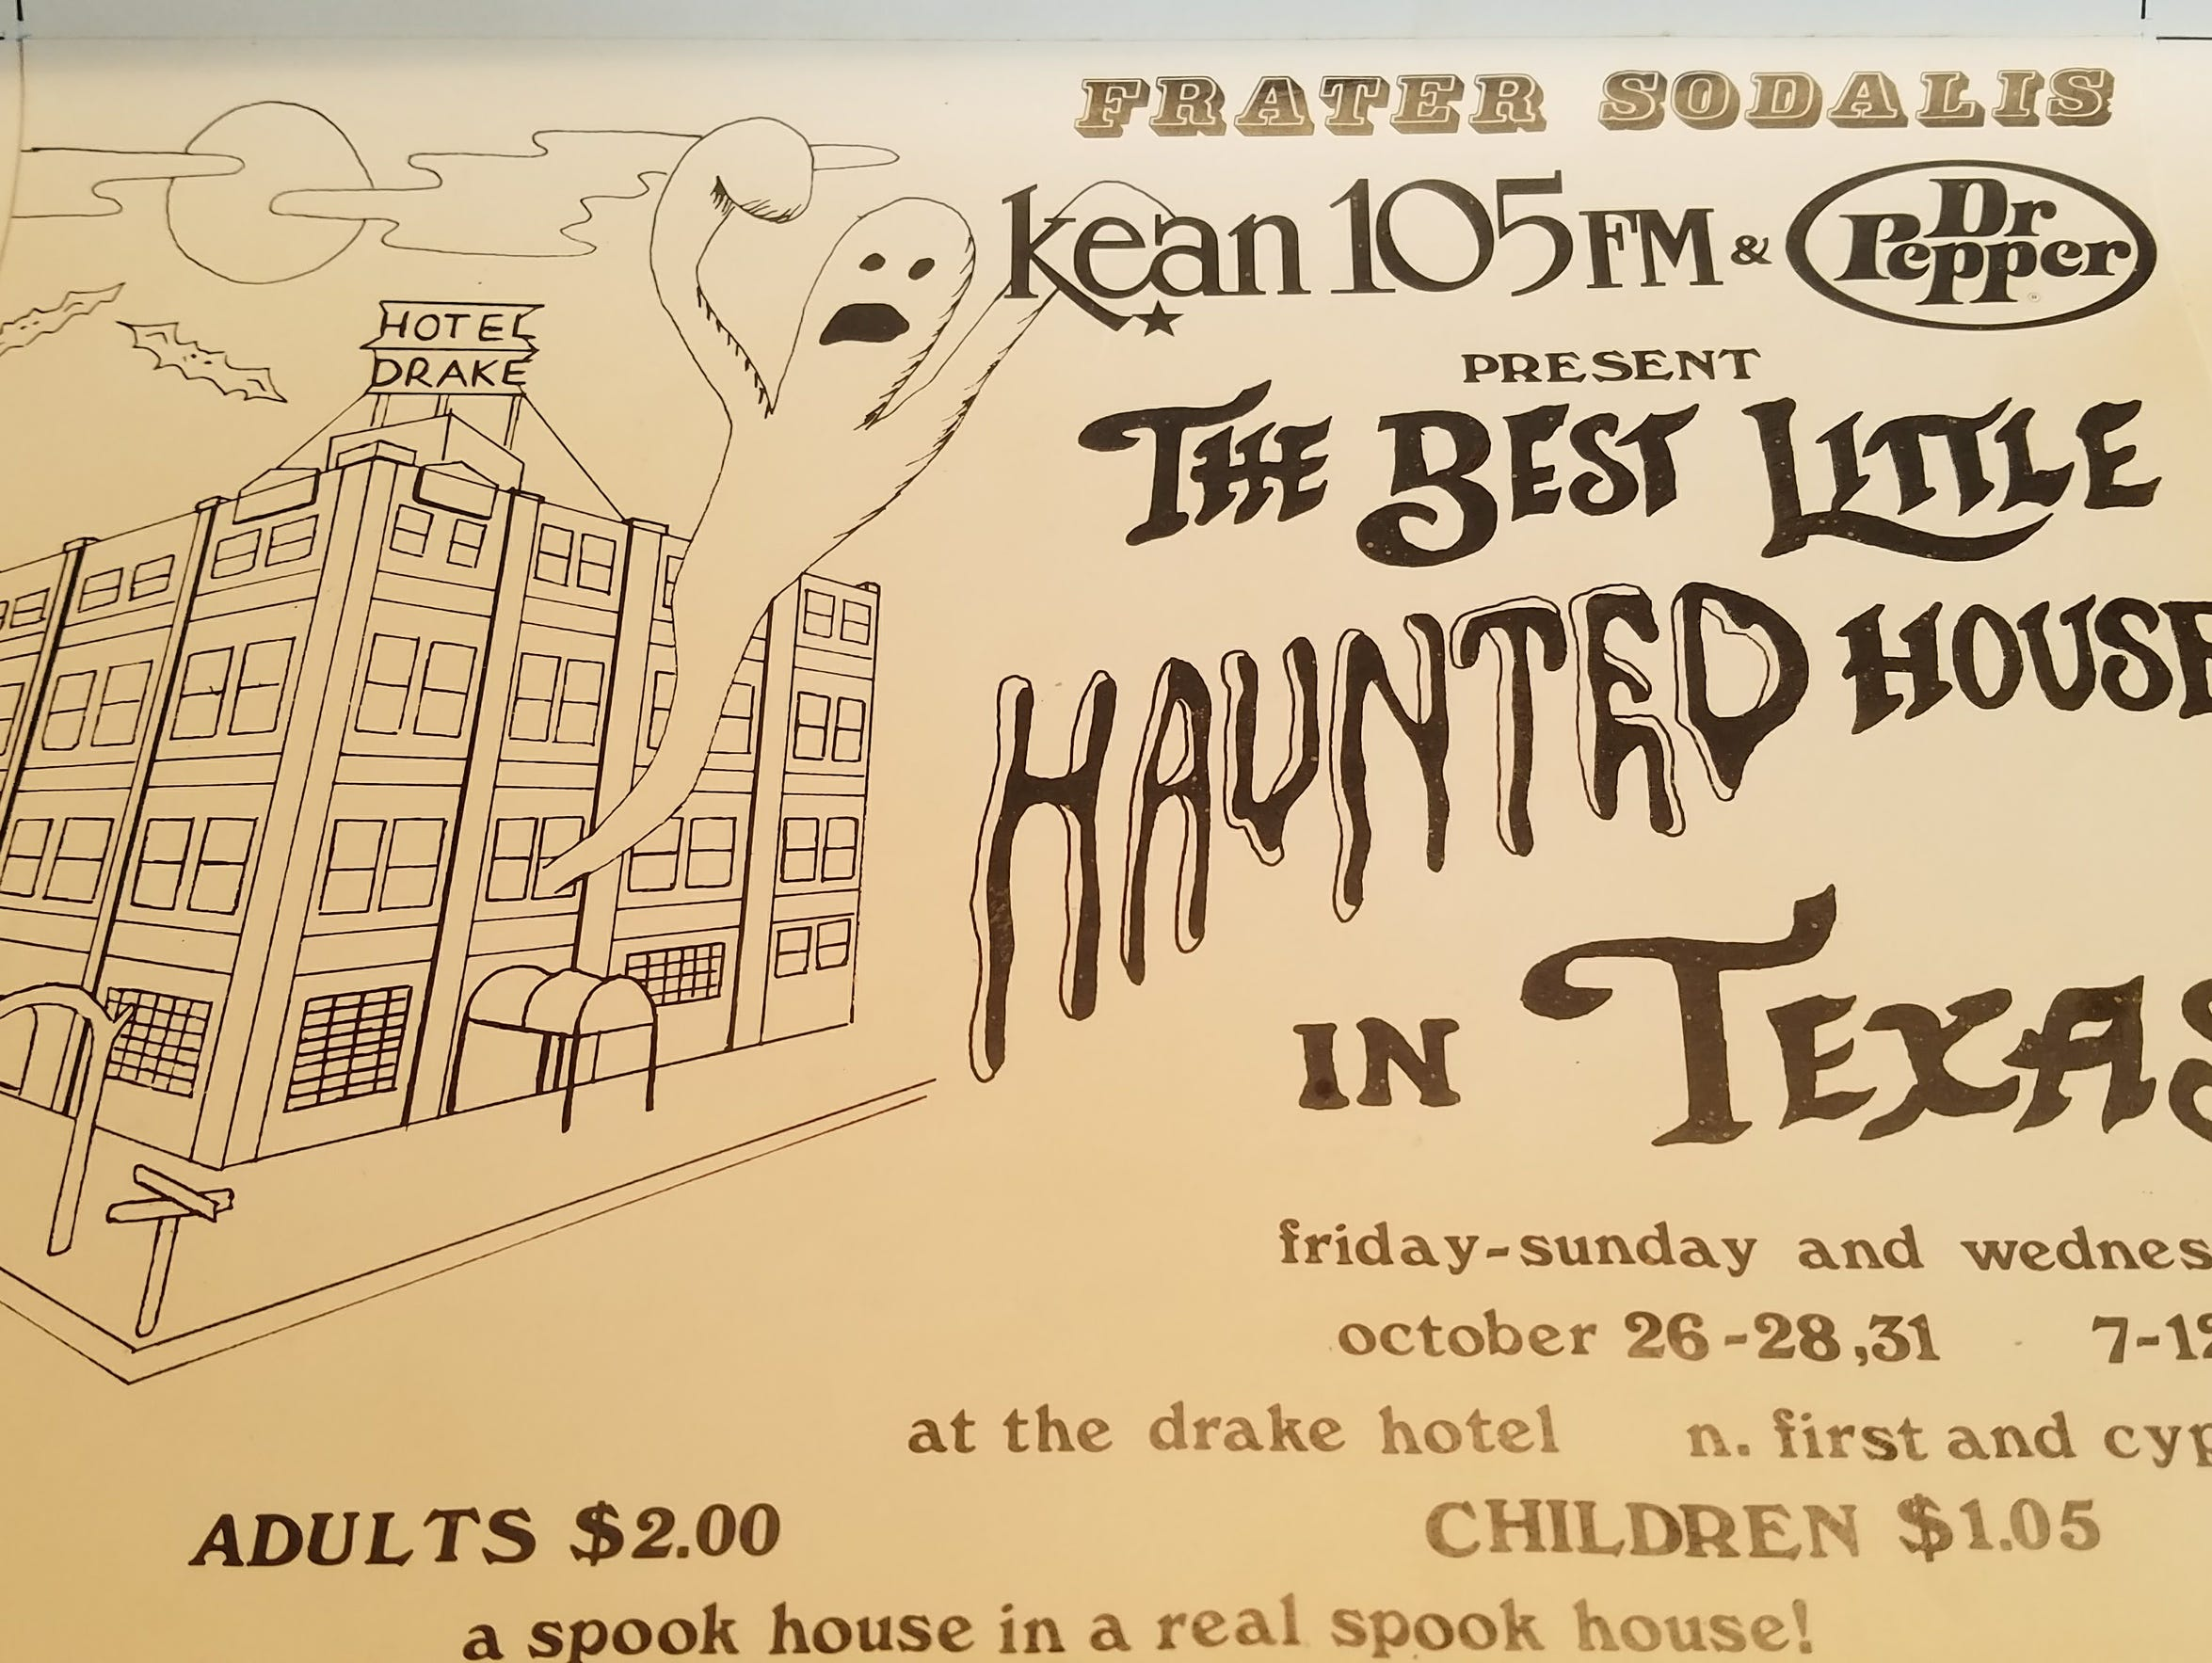 A vintage flyer for the Frater Sodalis Haunted House